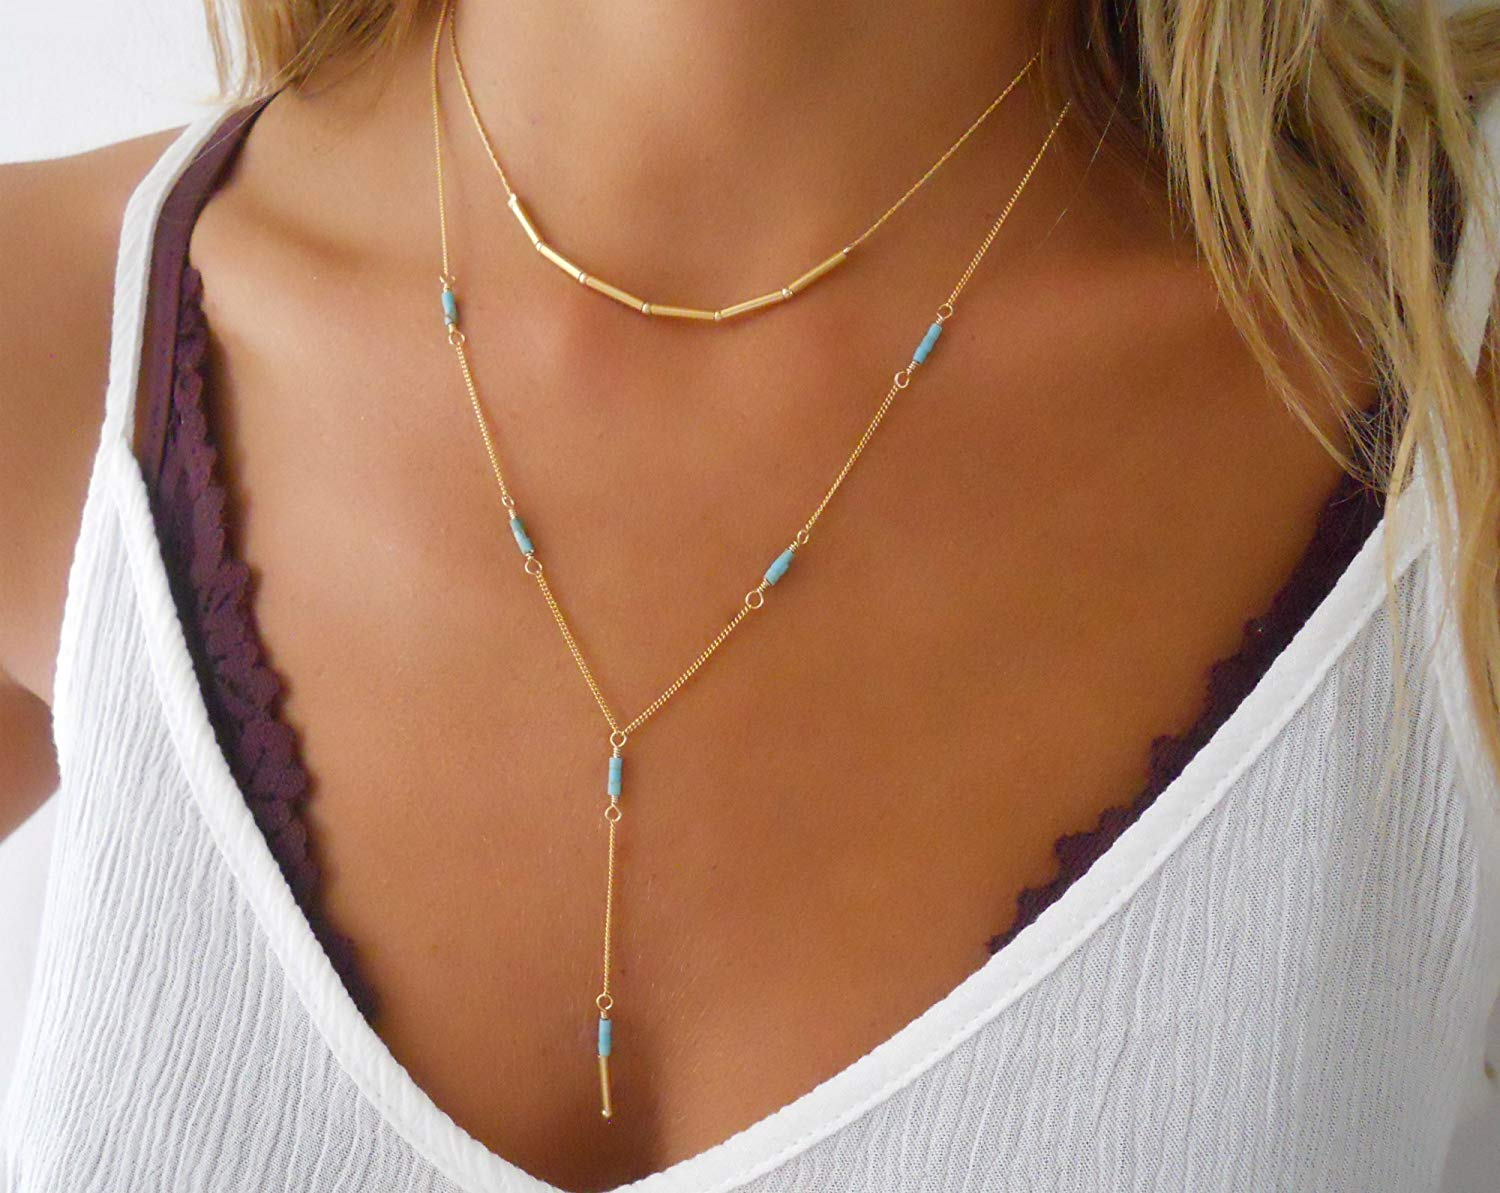 Handmade Designer Delicate Set Of 2 Gold Filled Layered Necklaces - Gold Tube Beads Necklace And Gold Lariat Y Shape Necklace With Turquoise Beads